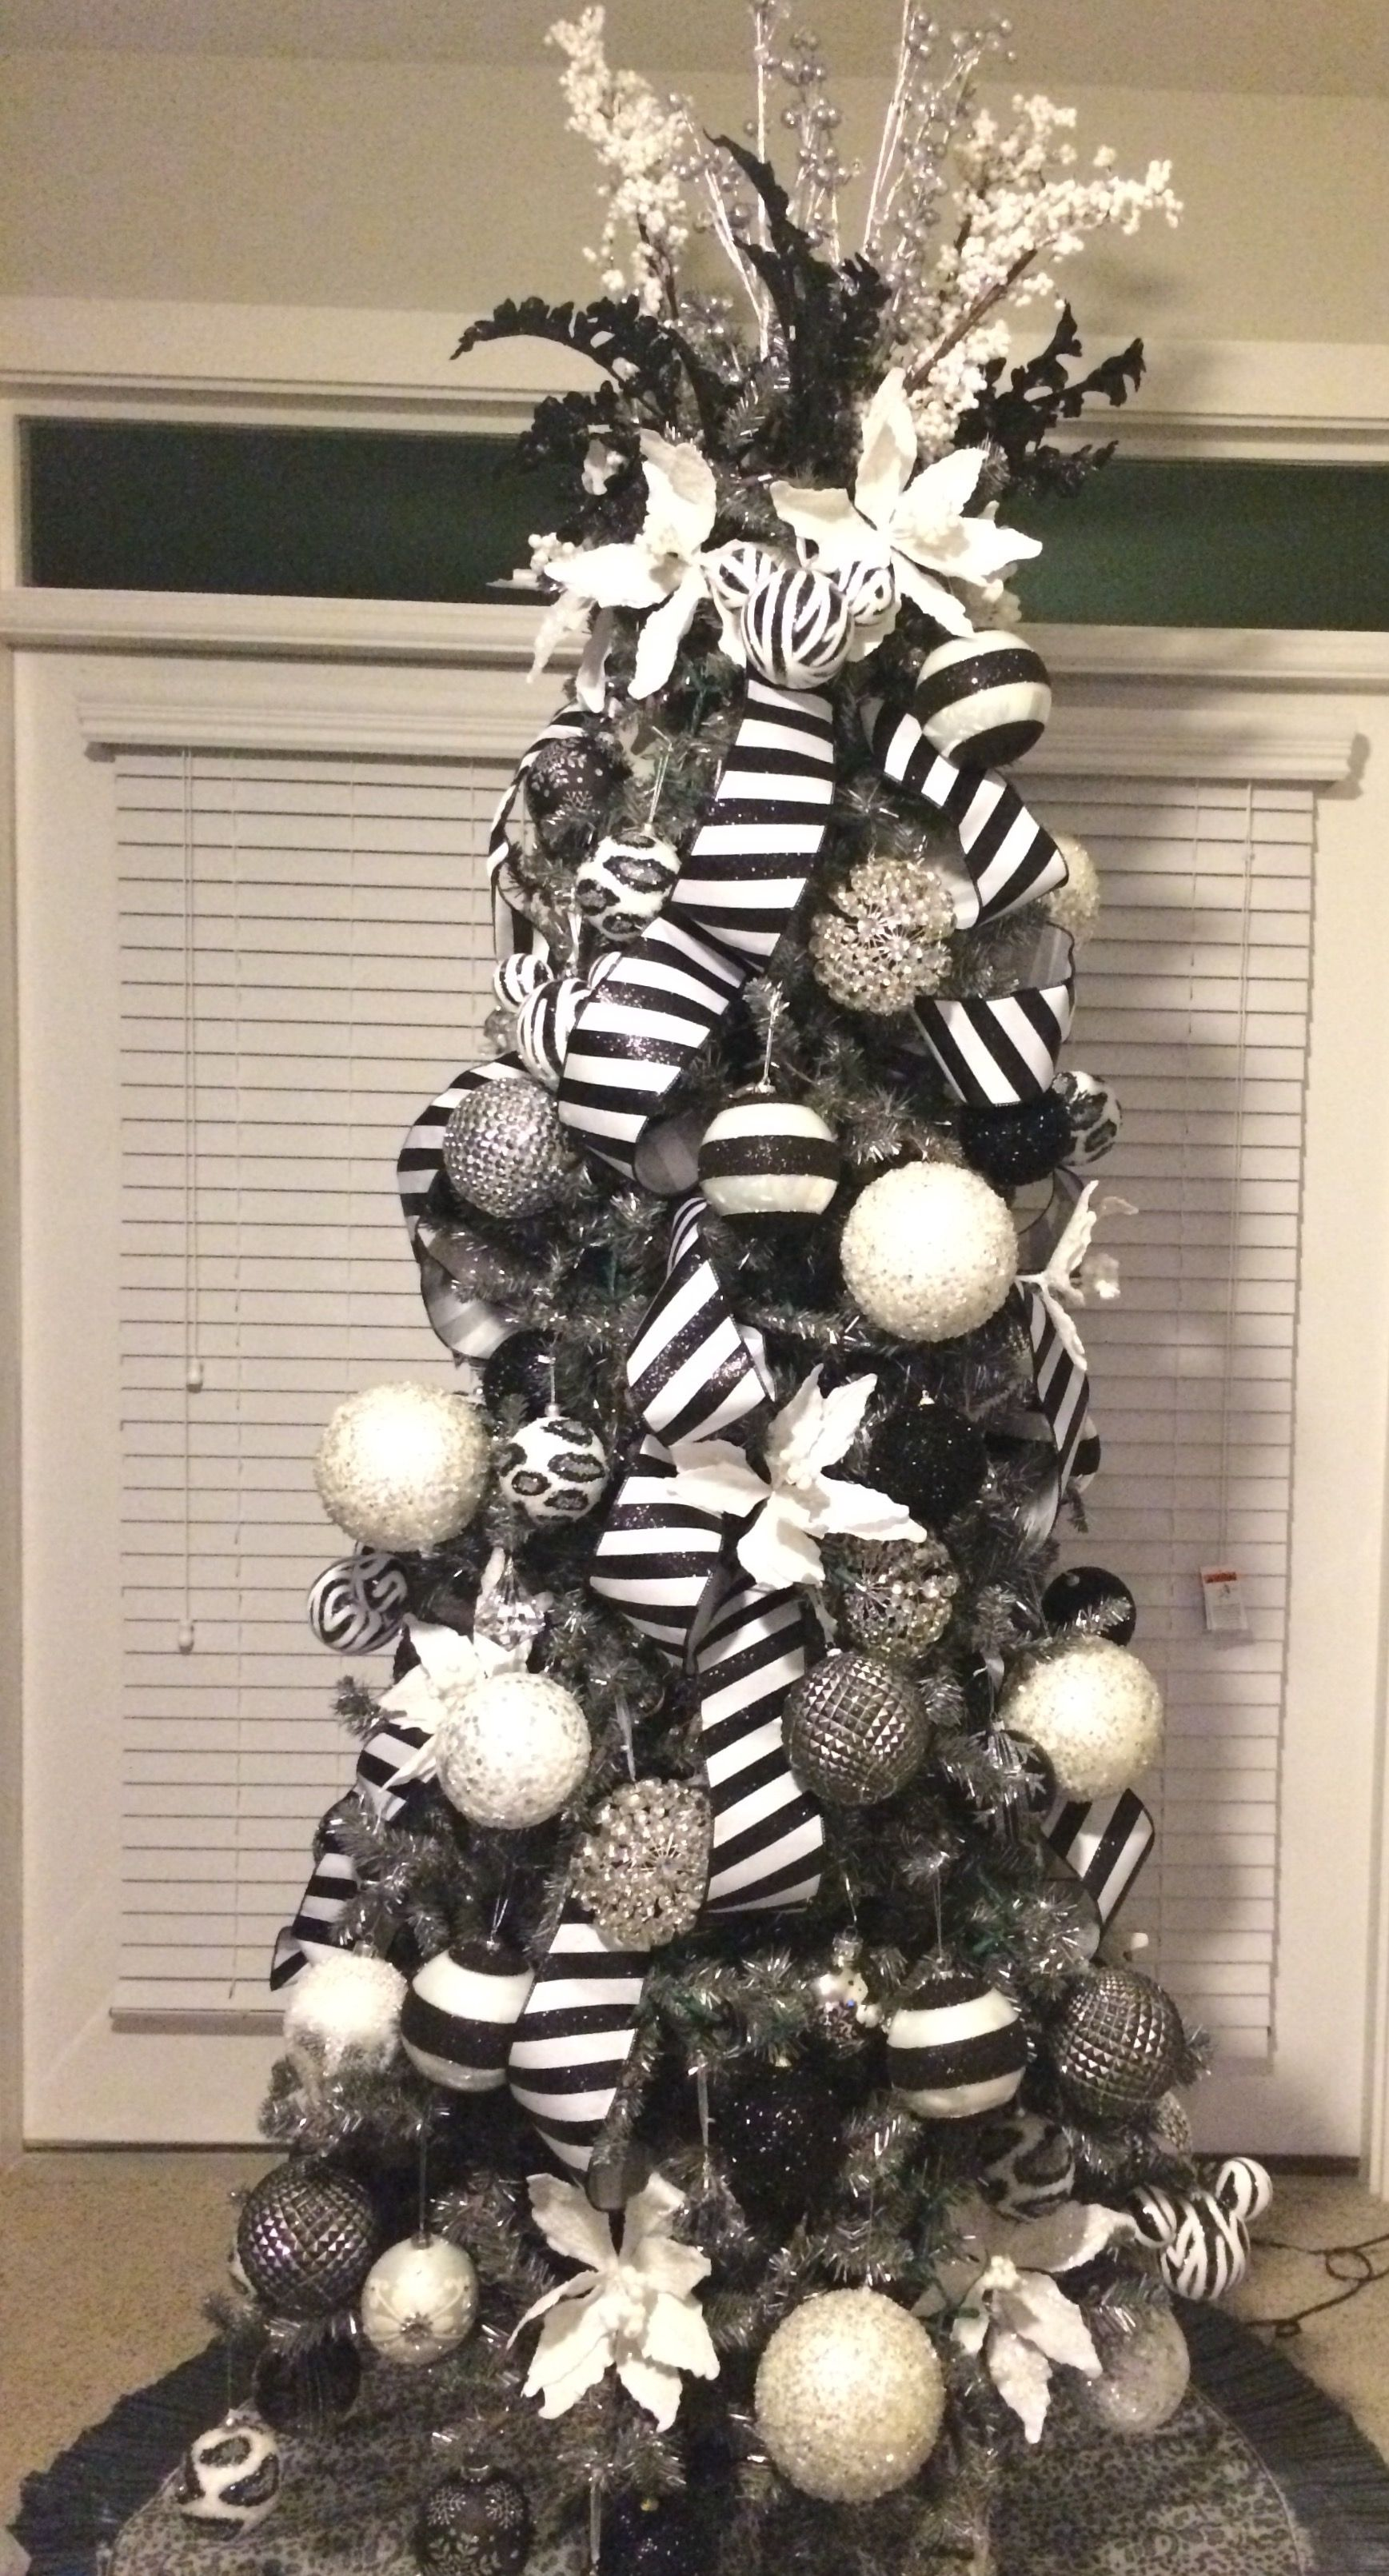 Dark gray/pewter tree with black, white, silver and bling